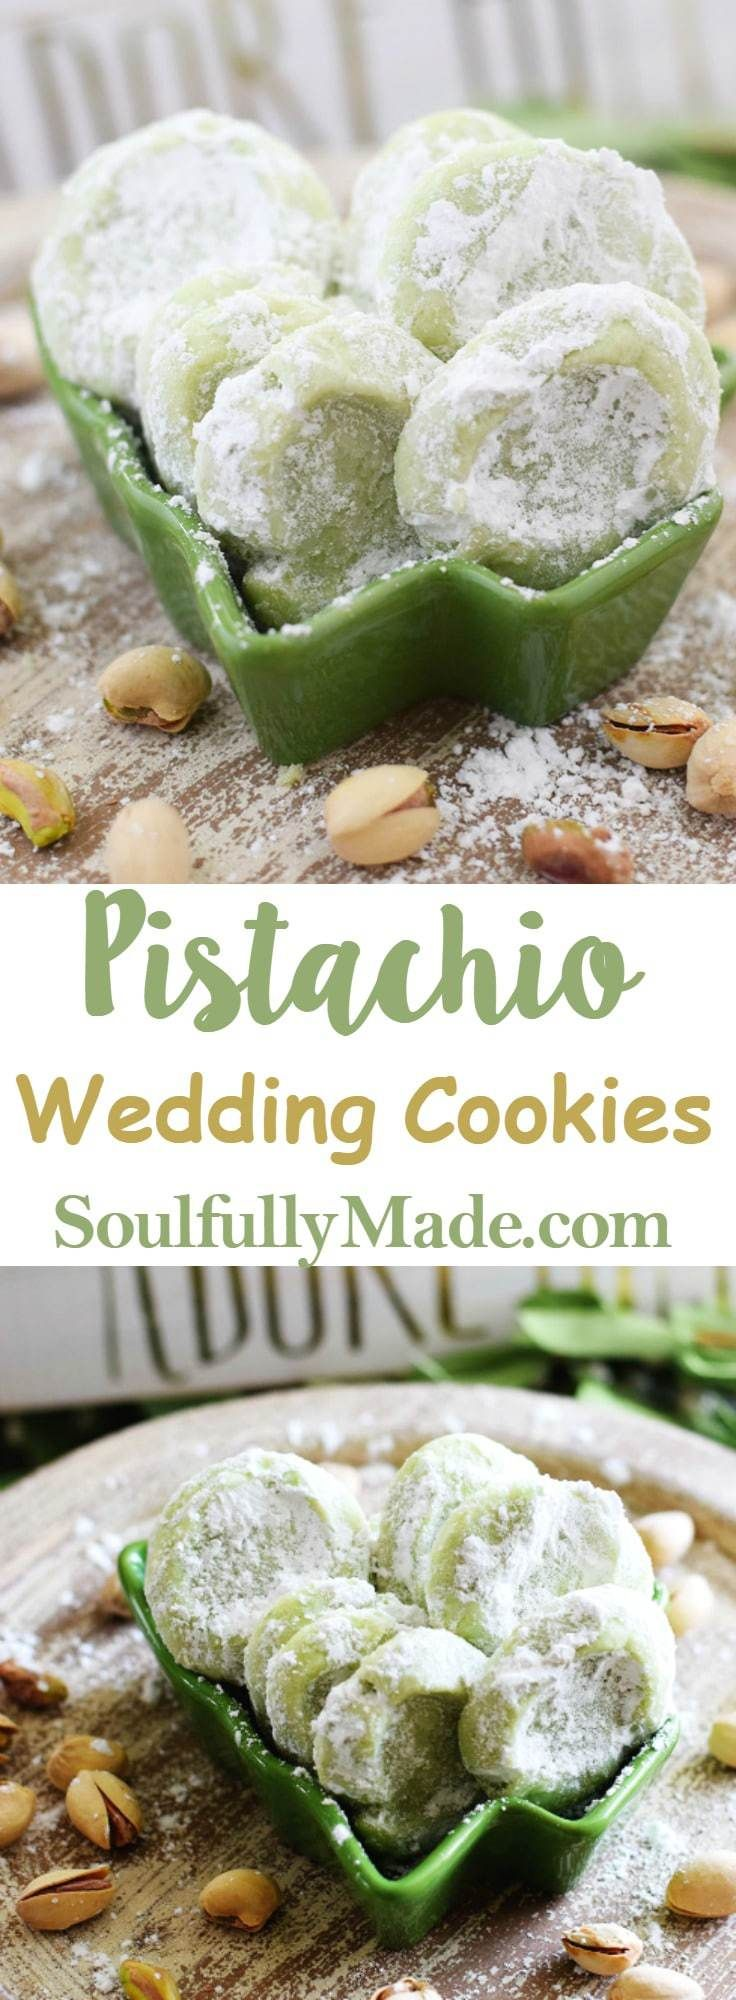 Pistachio Wedding Cookies | #ChristmasCookies – So…